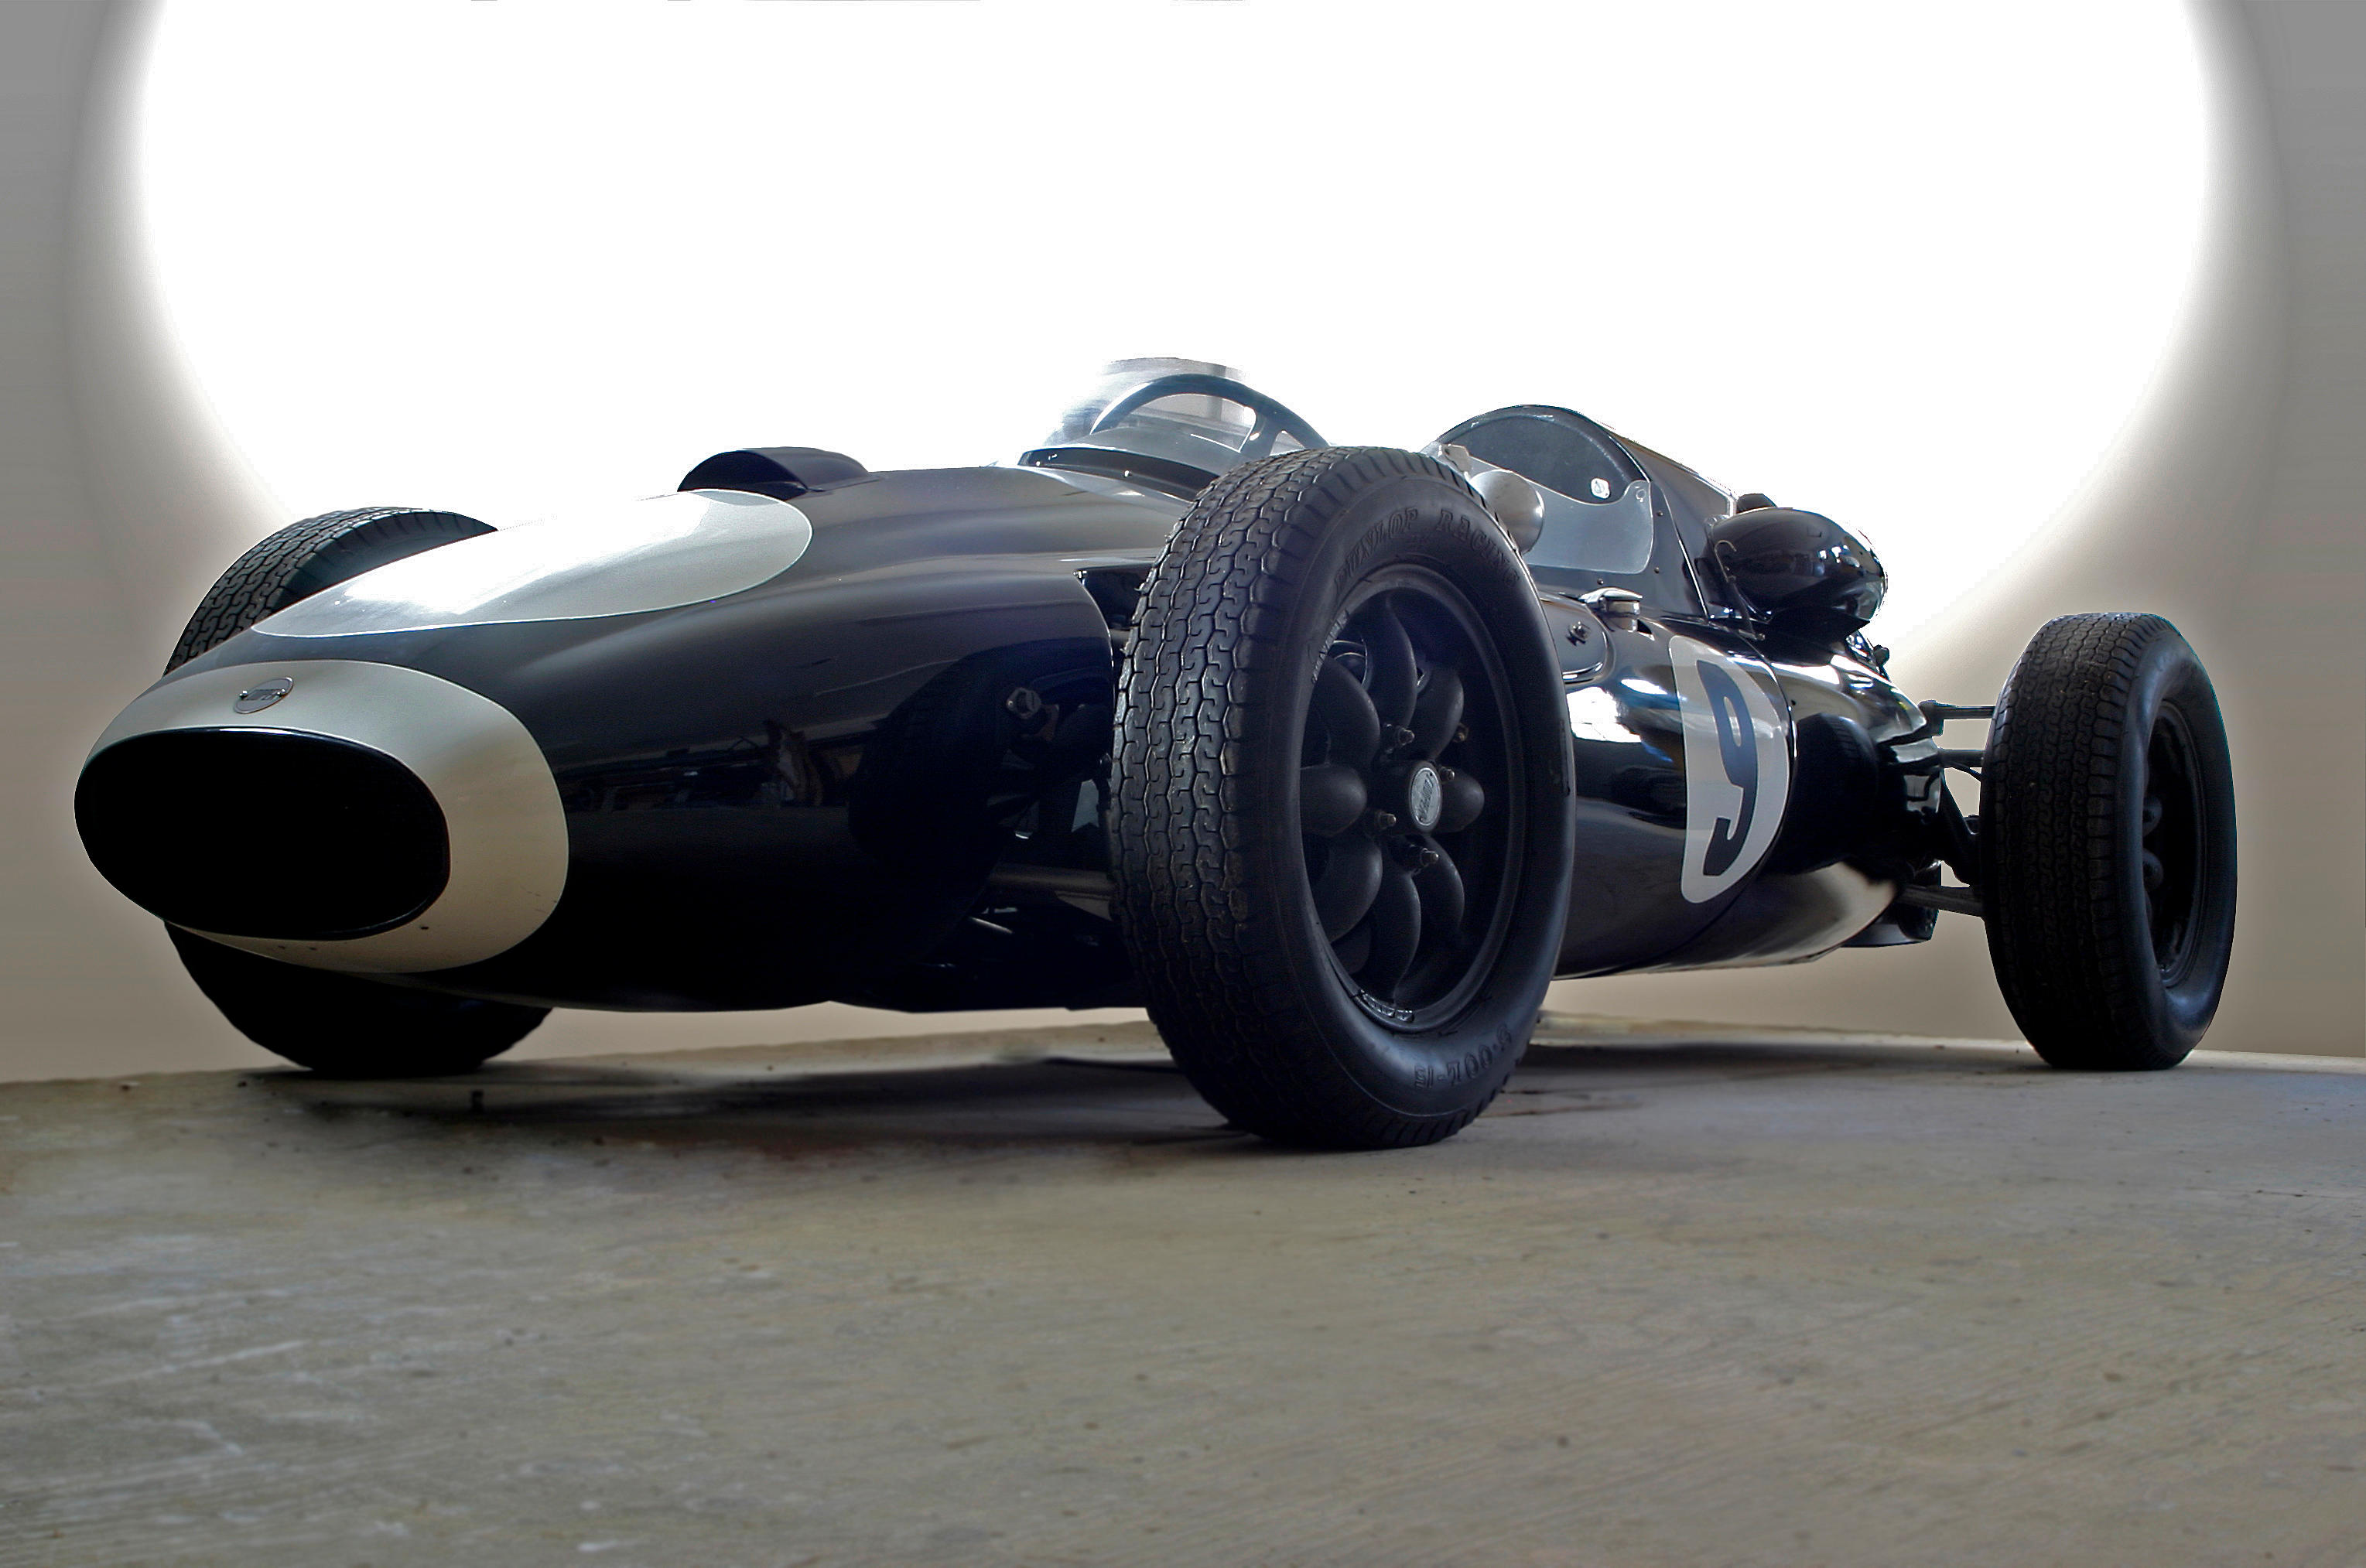 The Ex-Dickie Stoop 1958 '2-liter' COOPER-CLIMAX TYPE 45 FORMULA 1 RACING...